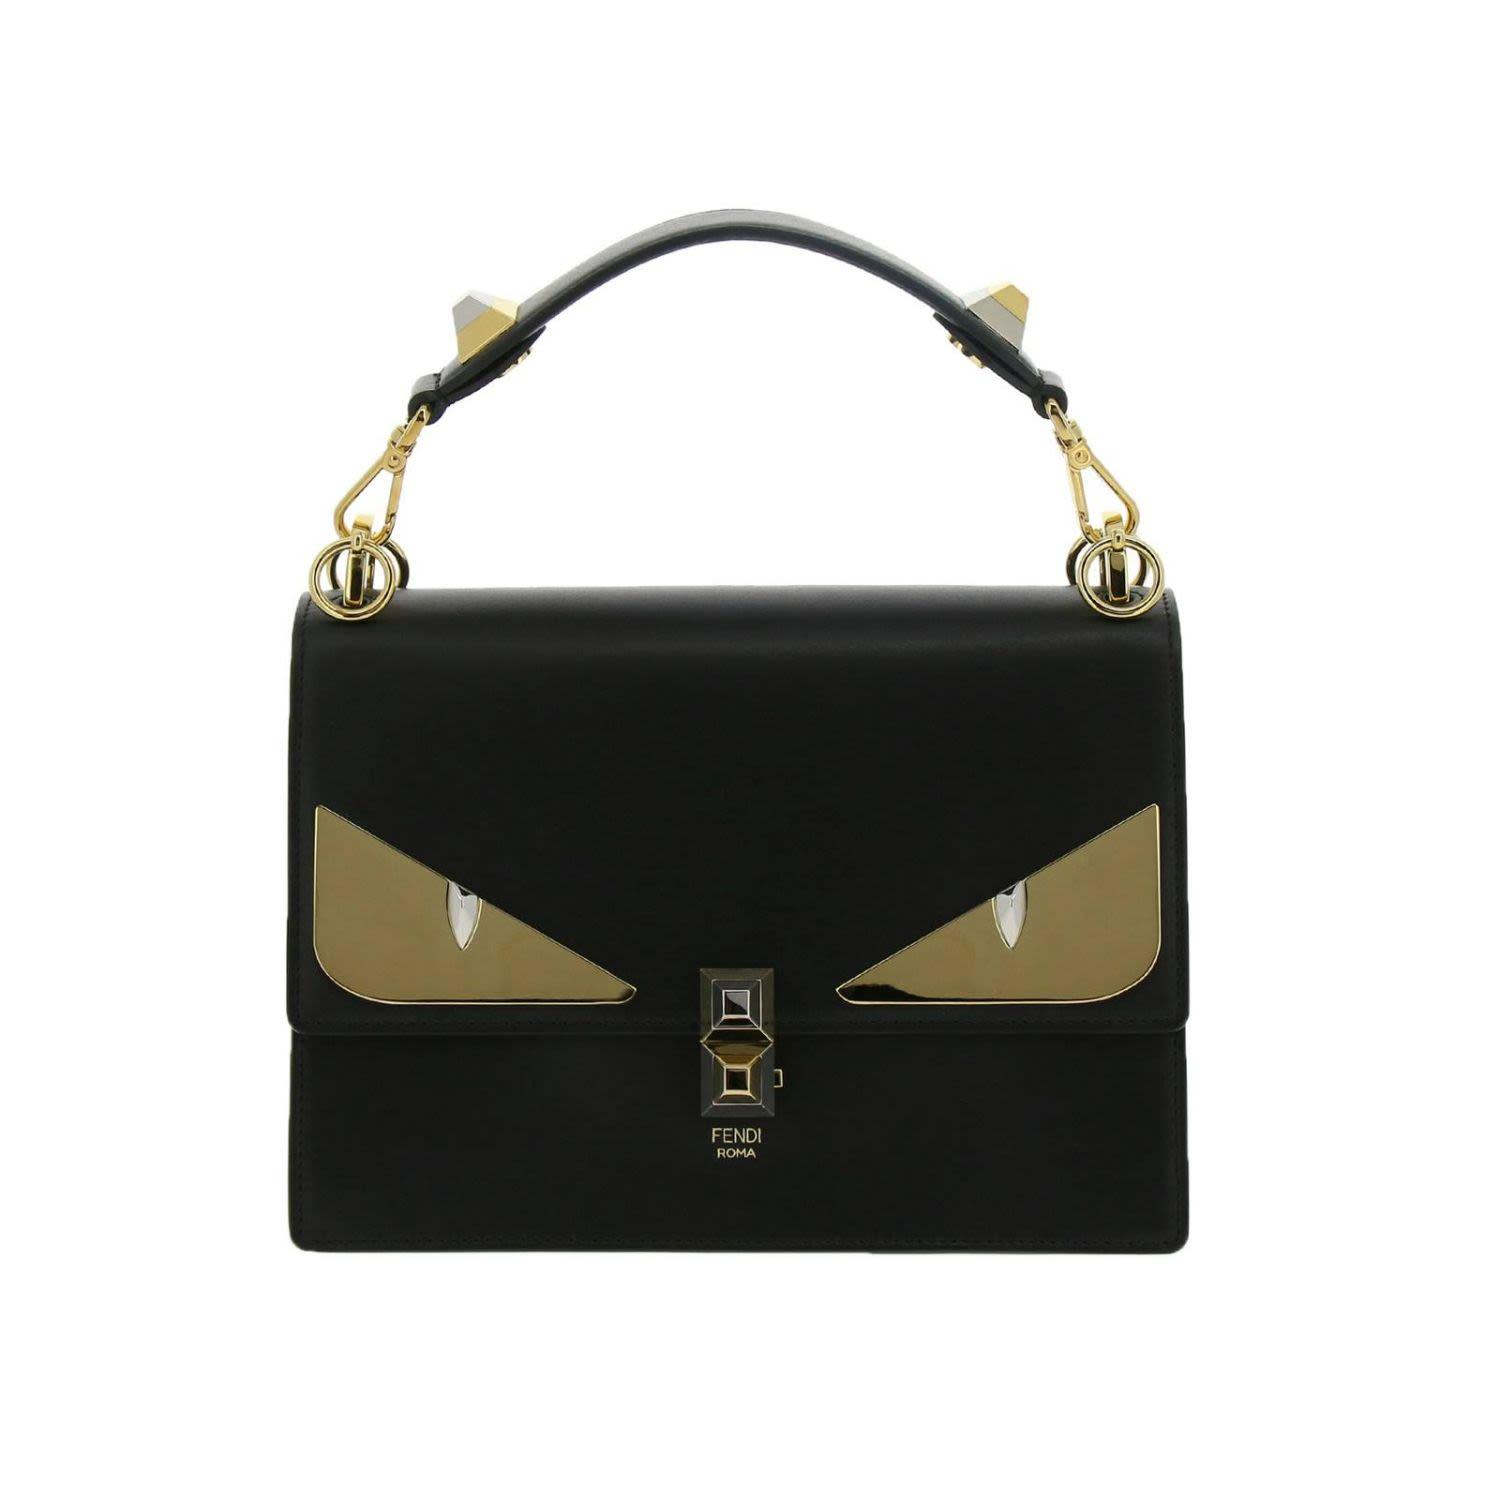 8329438e Monster Eyes Kan I Bag In Genuine Leather With Maxi Metal Eyes Bag Bugs in  Black